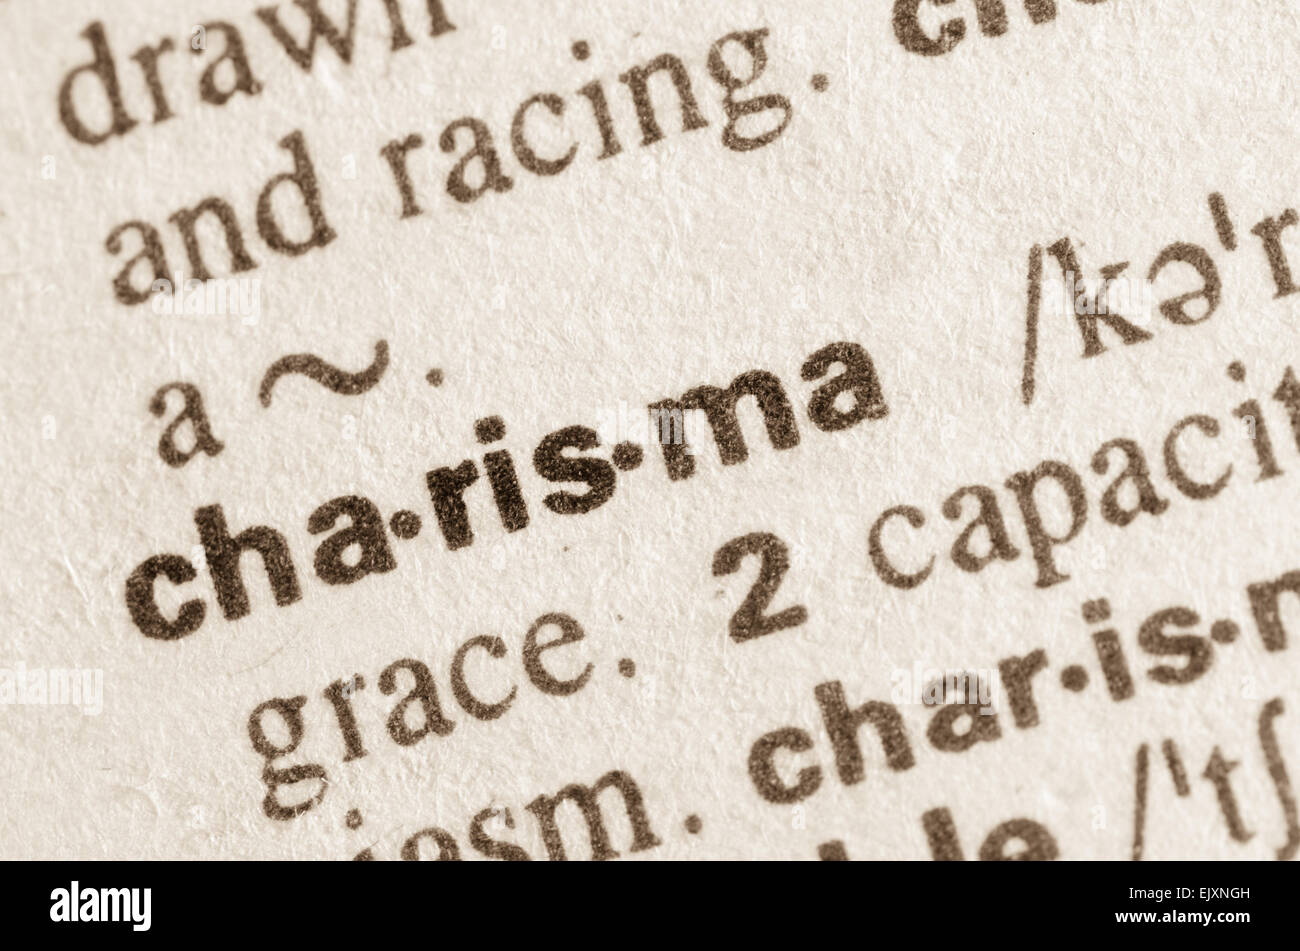 Definition of word charisma in dictionary - Stock Image